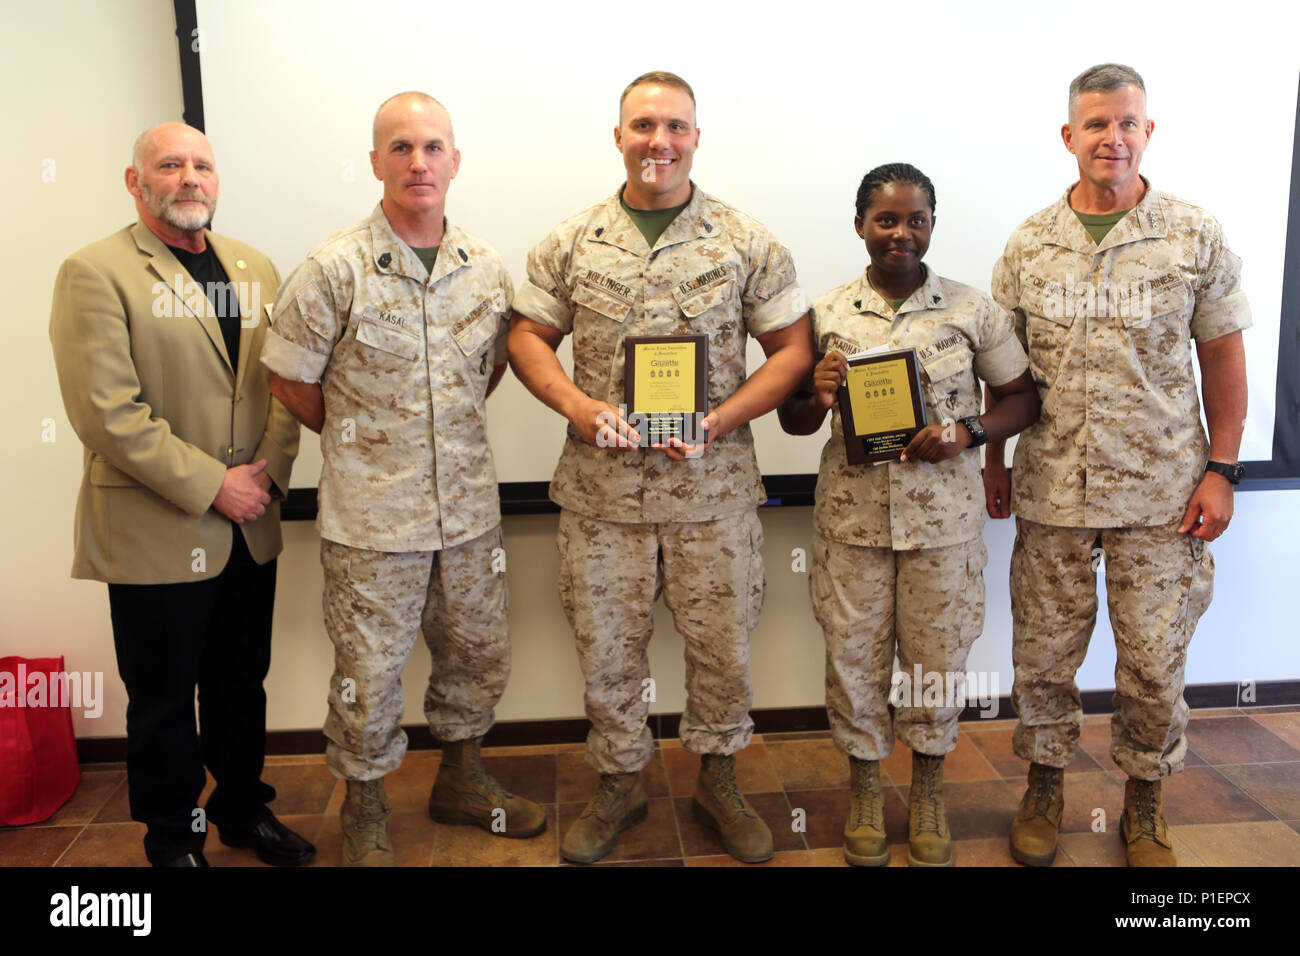 "Essay winners Sgt. Grant Kollinger and Cpl. Jackie Madhava display their plaques while posing with Lt. Gen. Lewis Craparotta, commanding general, I Marine Expeditionary Force (right), Sgt. Maj. Frank Pulley (left), and Sgt. Major Bradley Kasal, during a luncheon for the ""Protect What You've Earned"" essay contest at Marine Corps Base Camp Pendleton, Calif., Oct. 14, 2016. Madhava received first and Kollinger received third place out of more than 40 contestants. (U.S. Marine Corps photo by Pfc. Gabino Perez) - Stock Image"